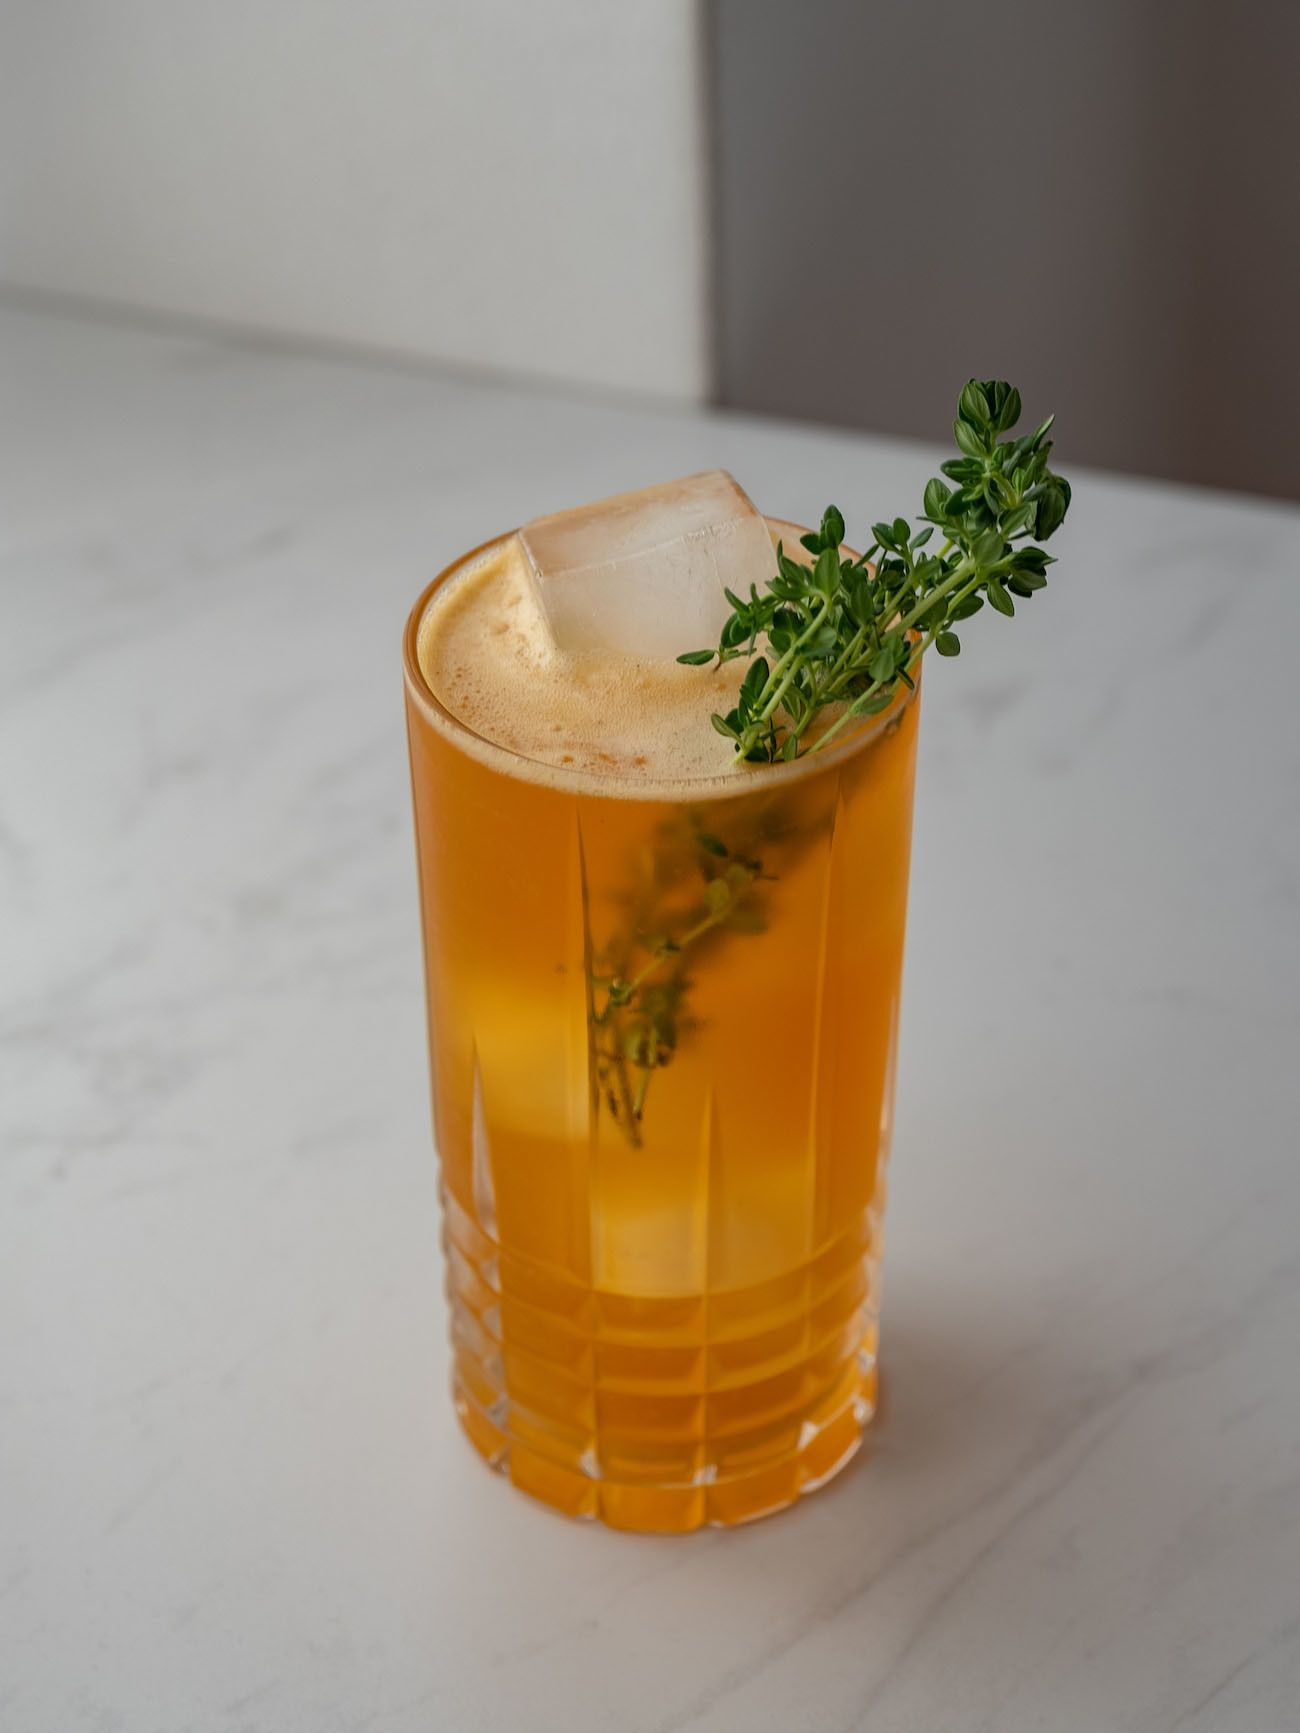 Foodblog, About Fuel, Cocktail, Roe & Co Quitten Fizz, Zitronenthymian